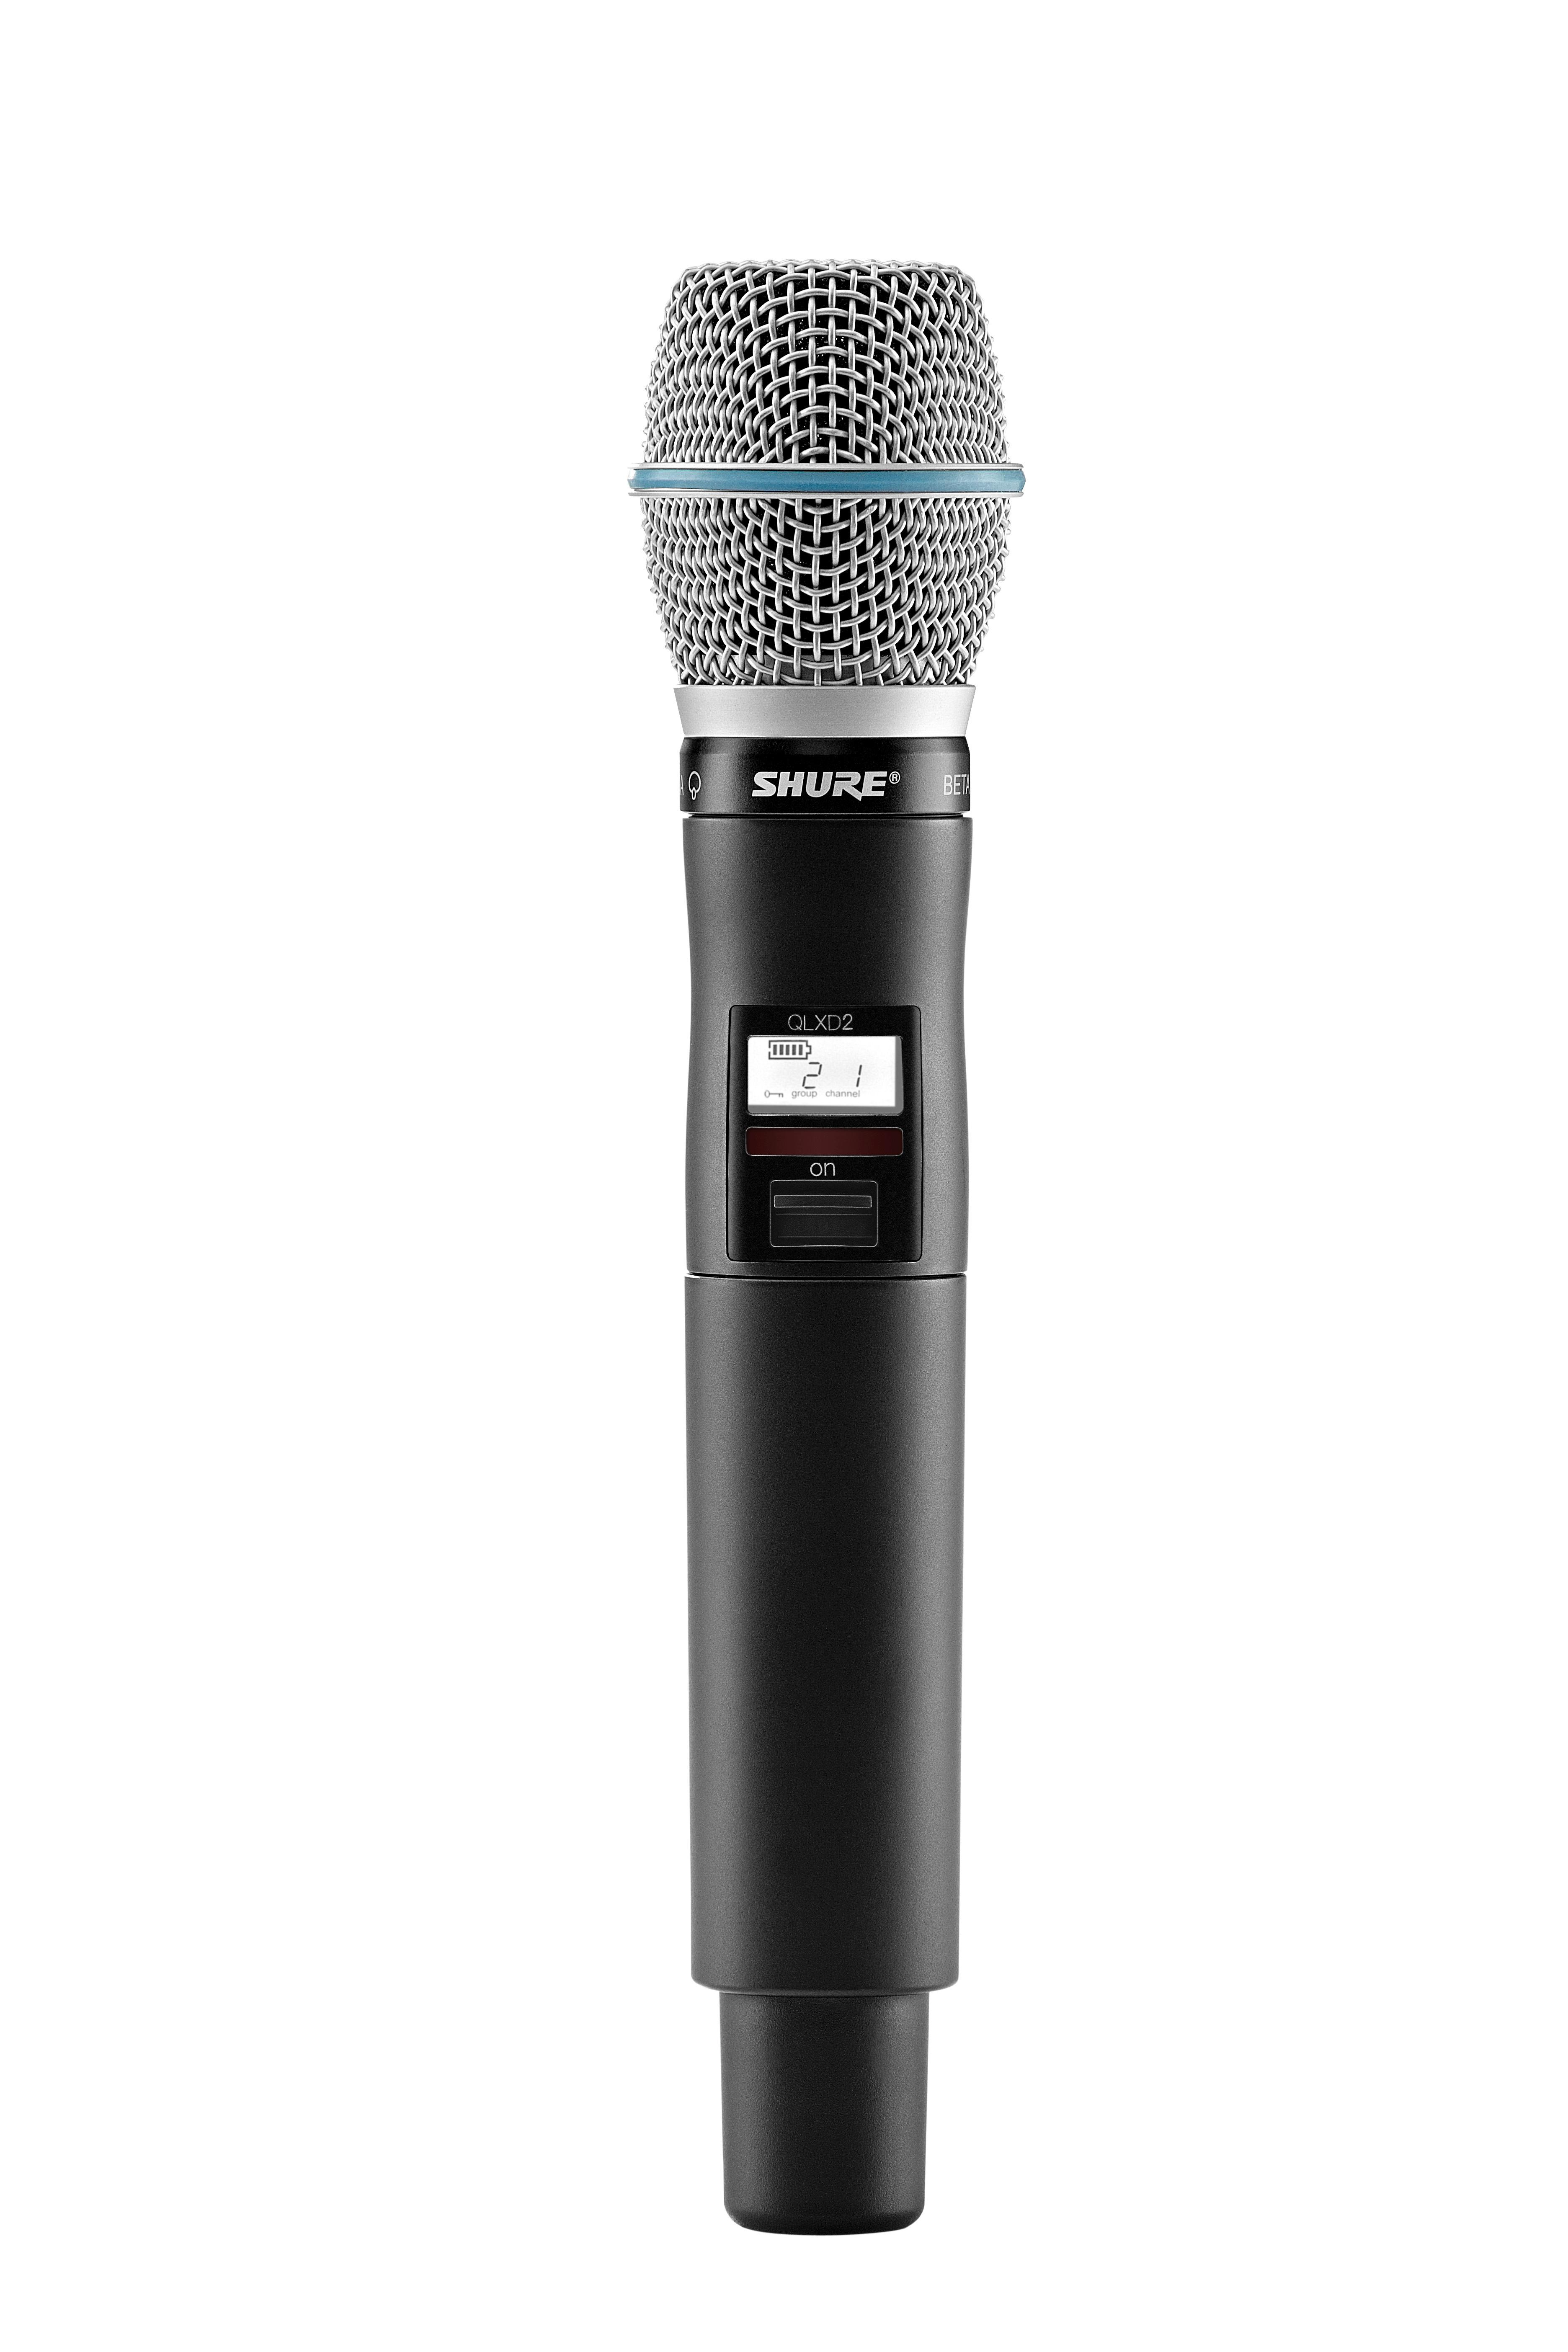 shure qlxd2 b87a handheld wireless transmitter with beta 87a microphone g50. Black Bedroom Furniture Sets. Home Design Ideas